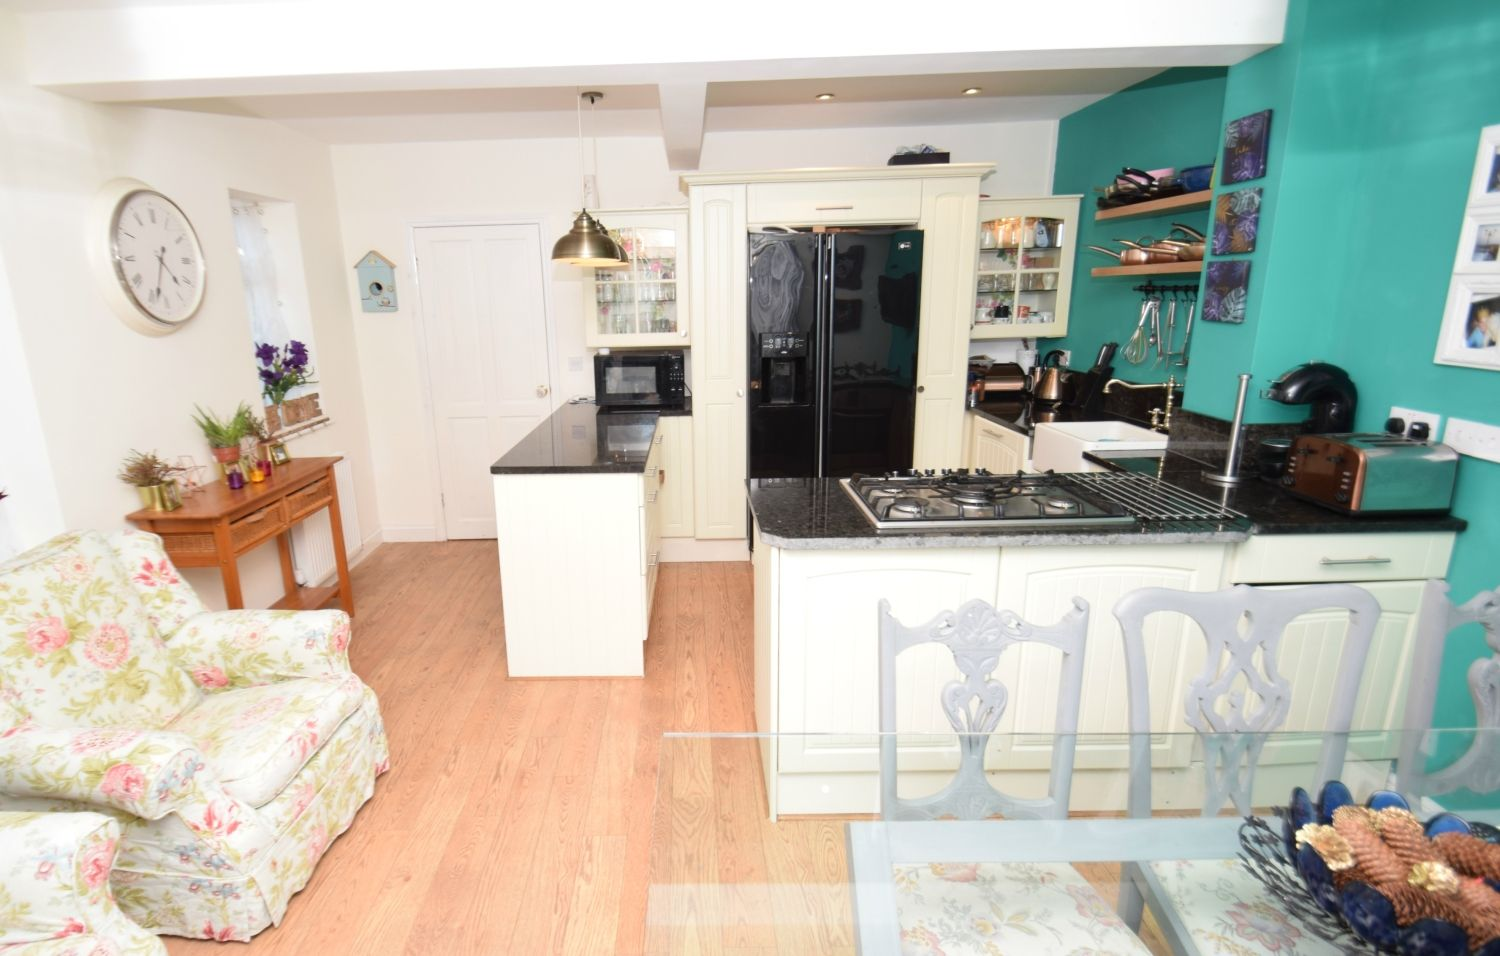 4 bed semi-detached for sale in Upland Grove, Bromsgrove, B61  - Property Image 8